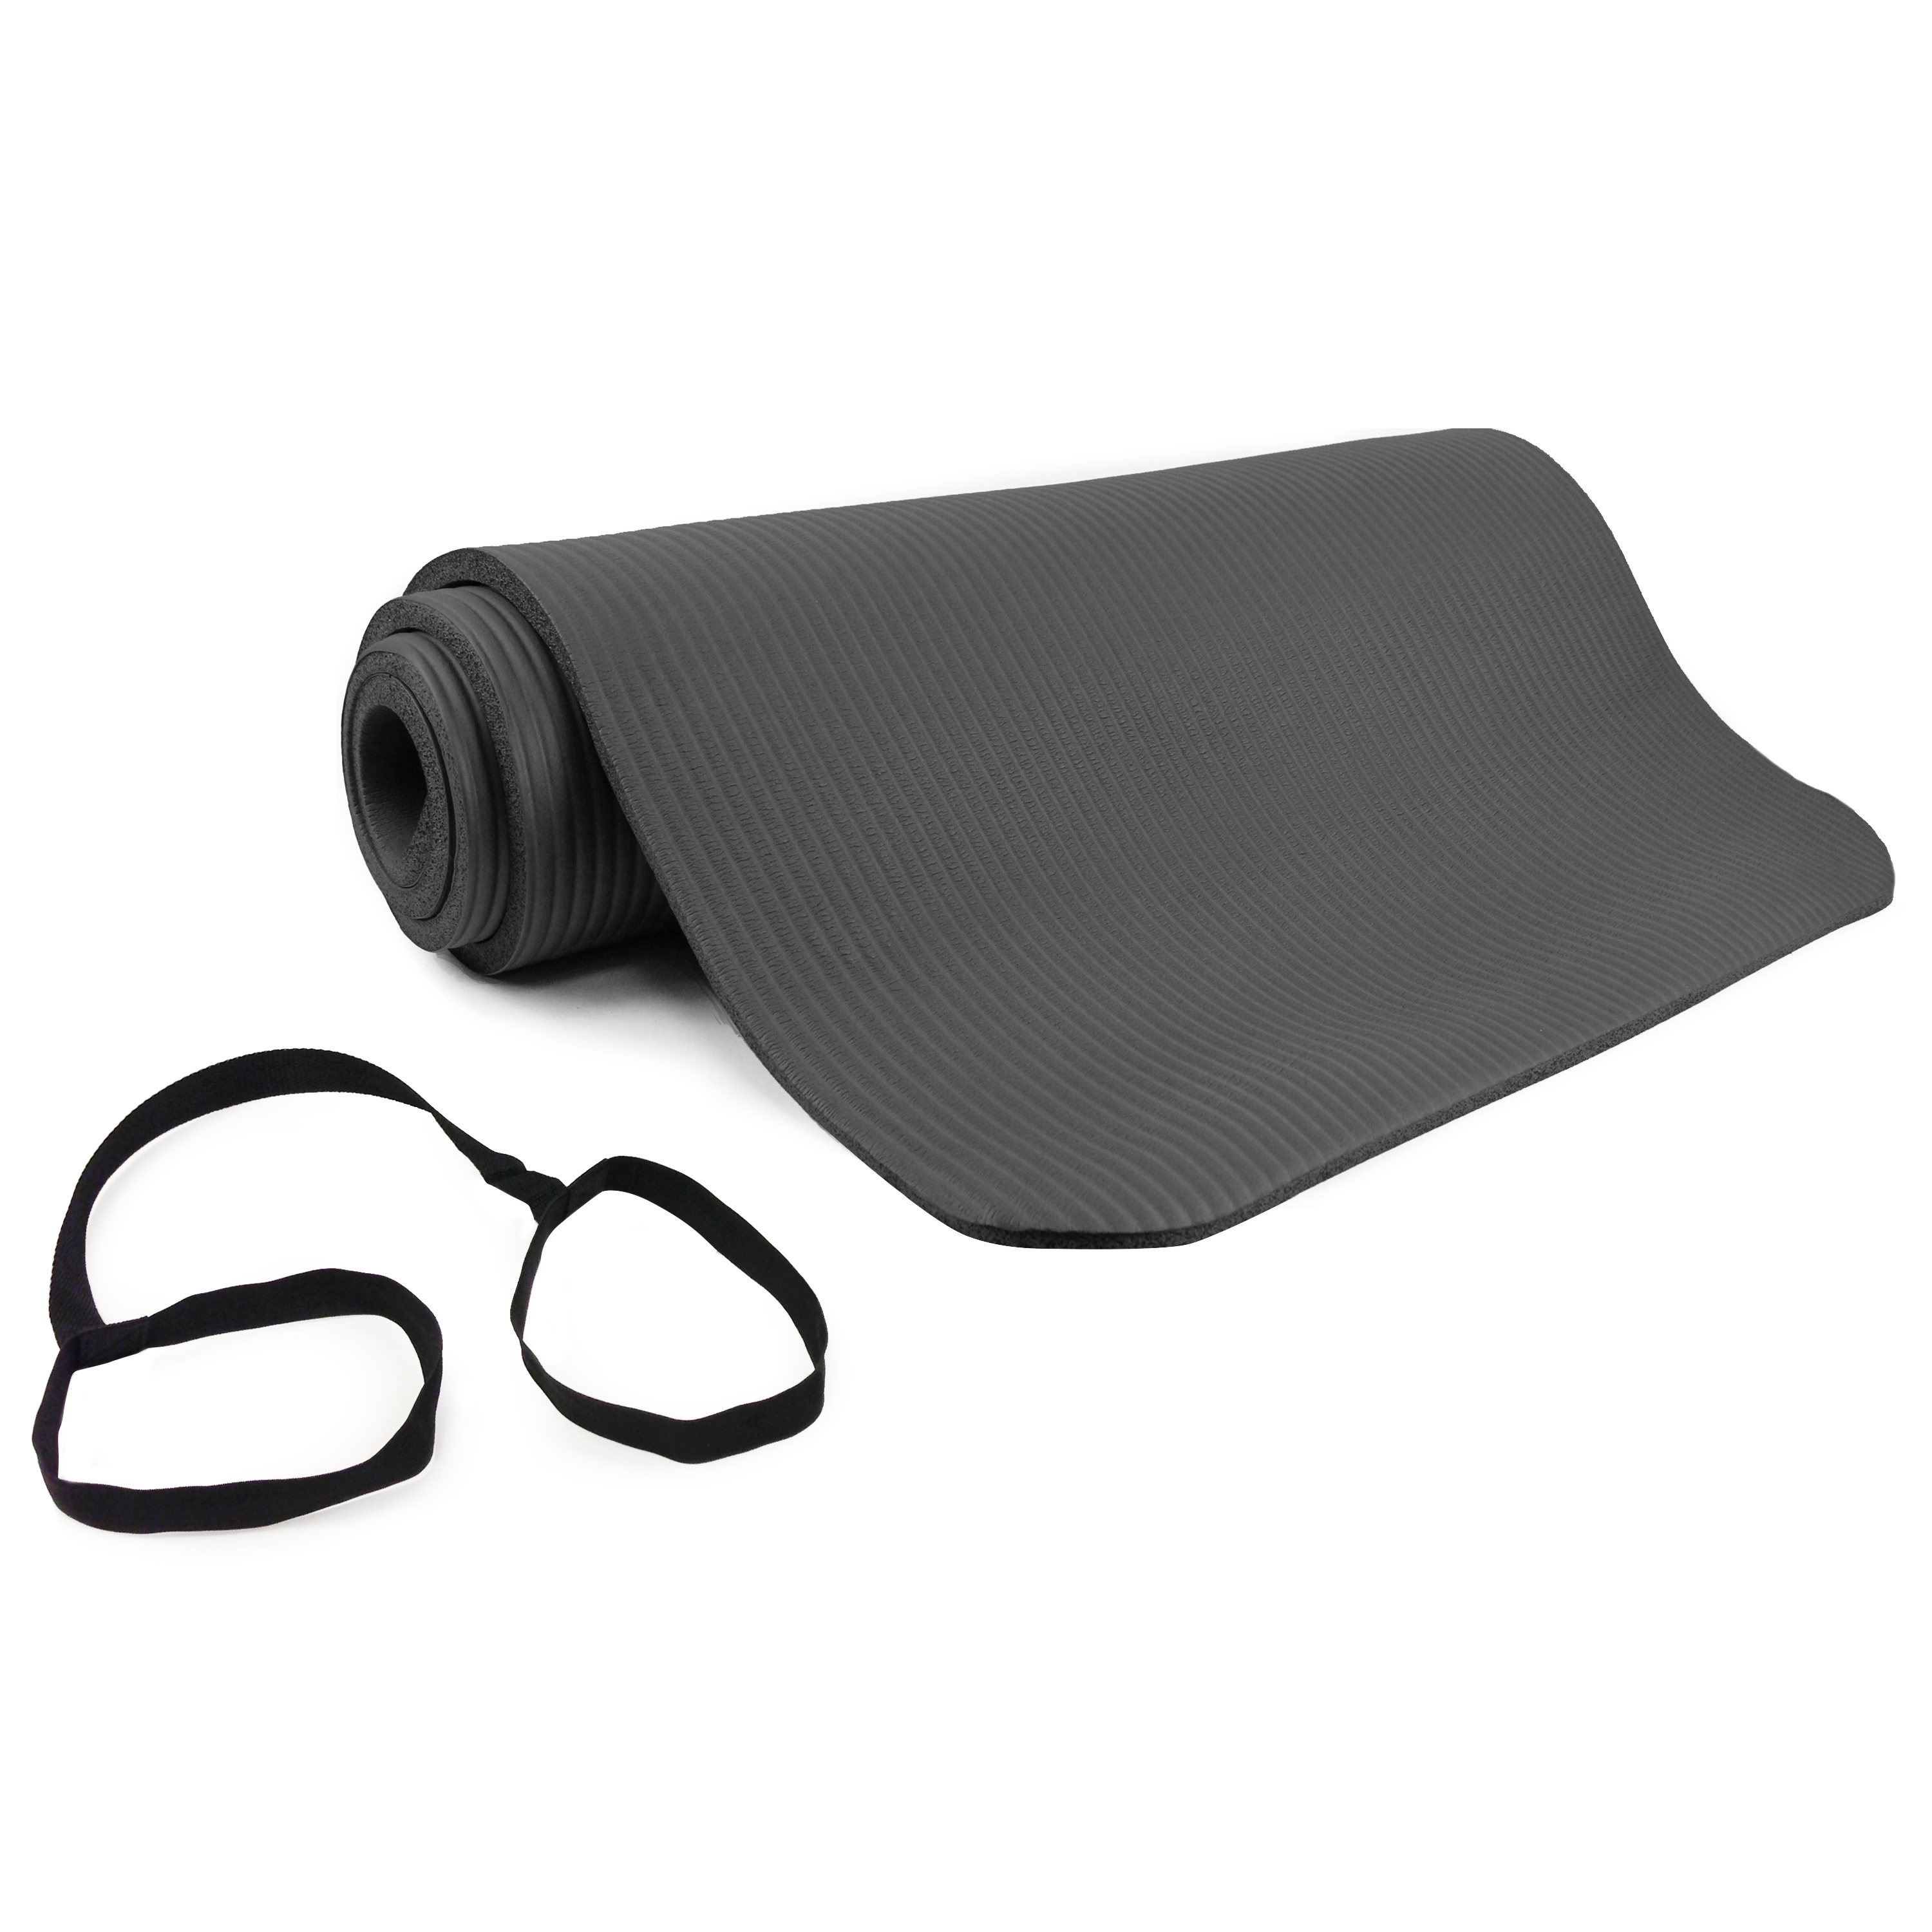 Venture Comfort Foam Exercise Mat, 12 mm, Grey